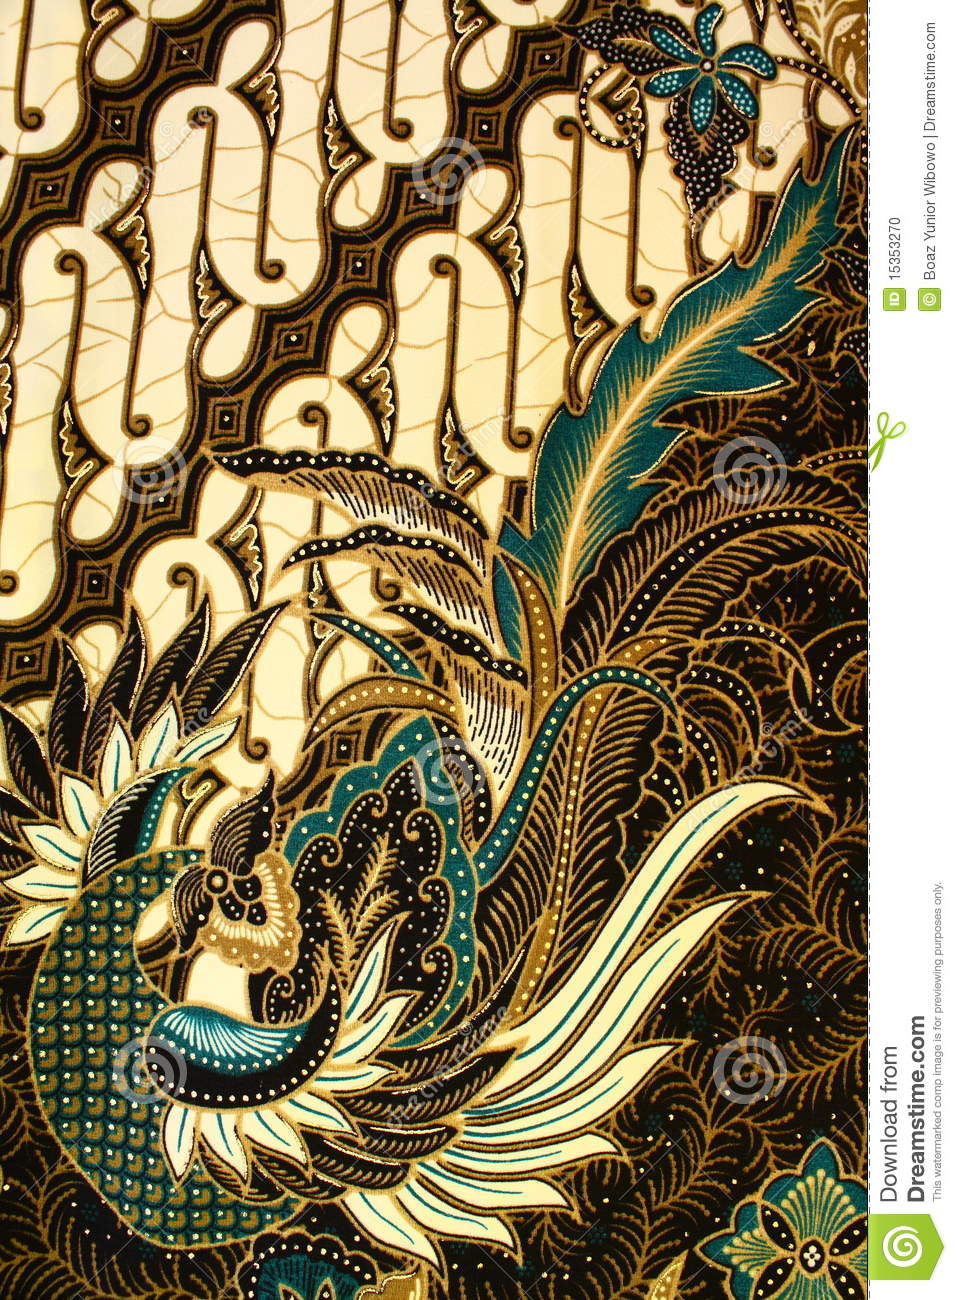 More similar stock images of ` Batik Pattern, Indonesia `